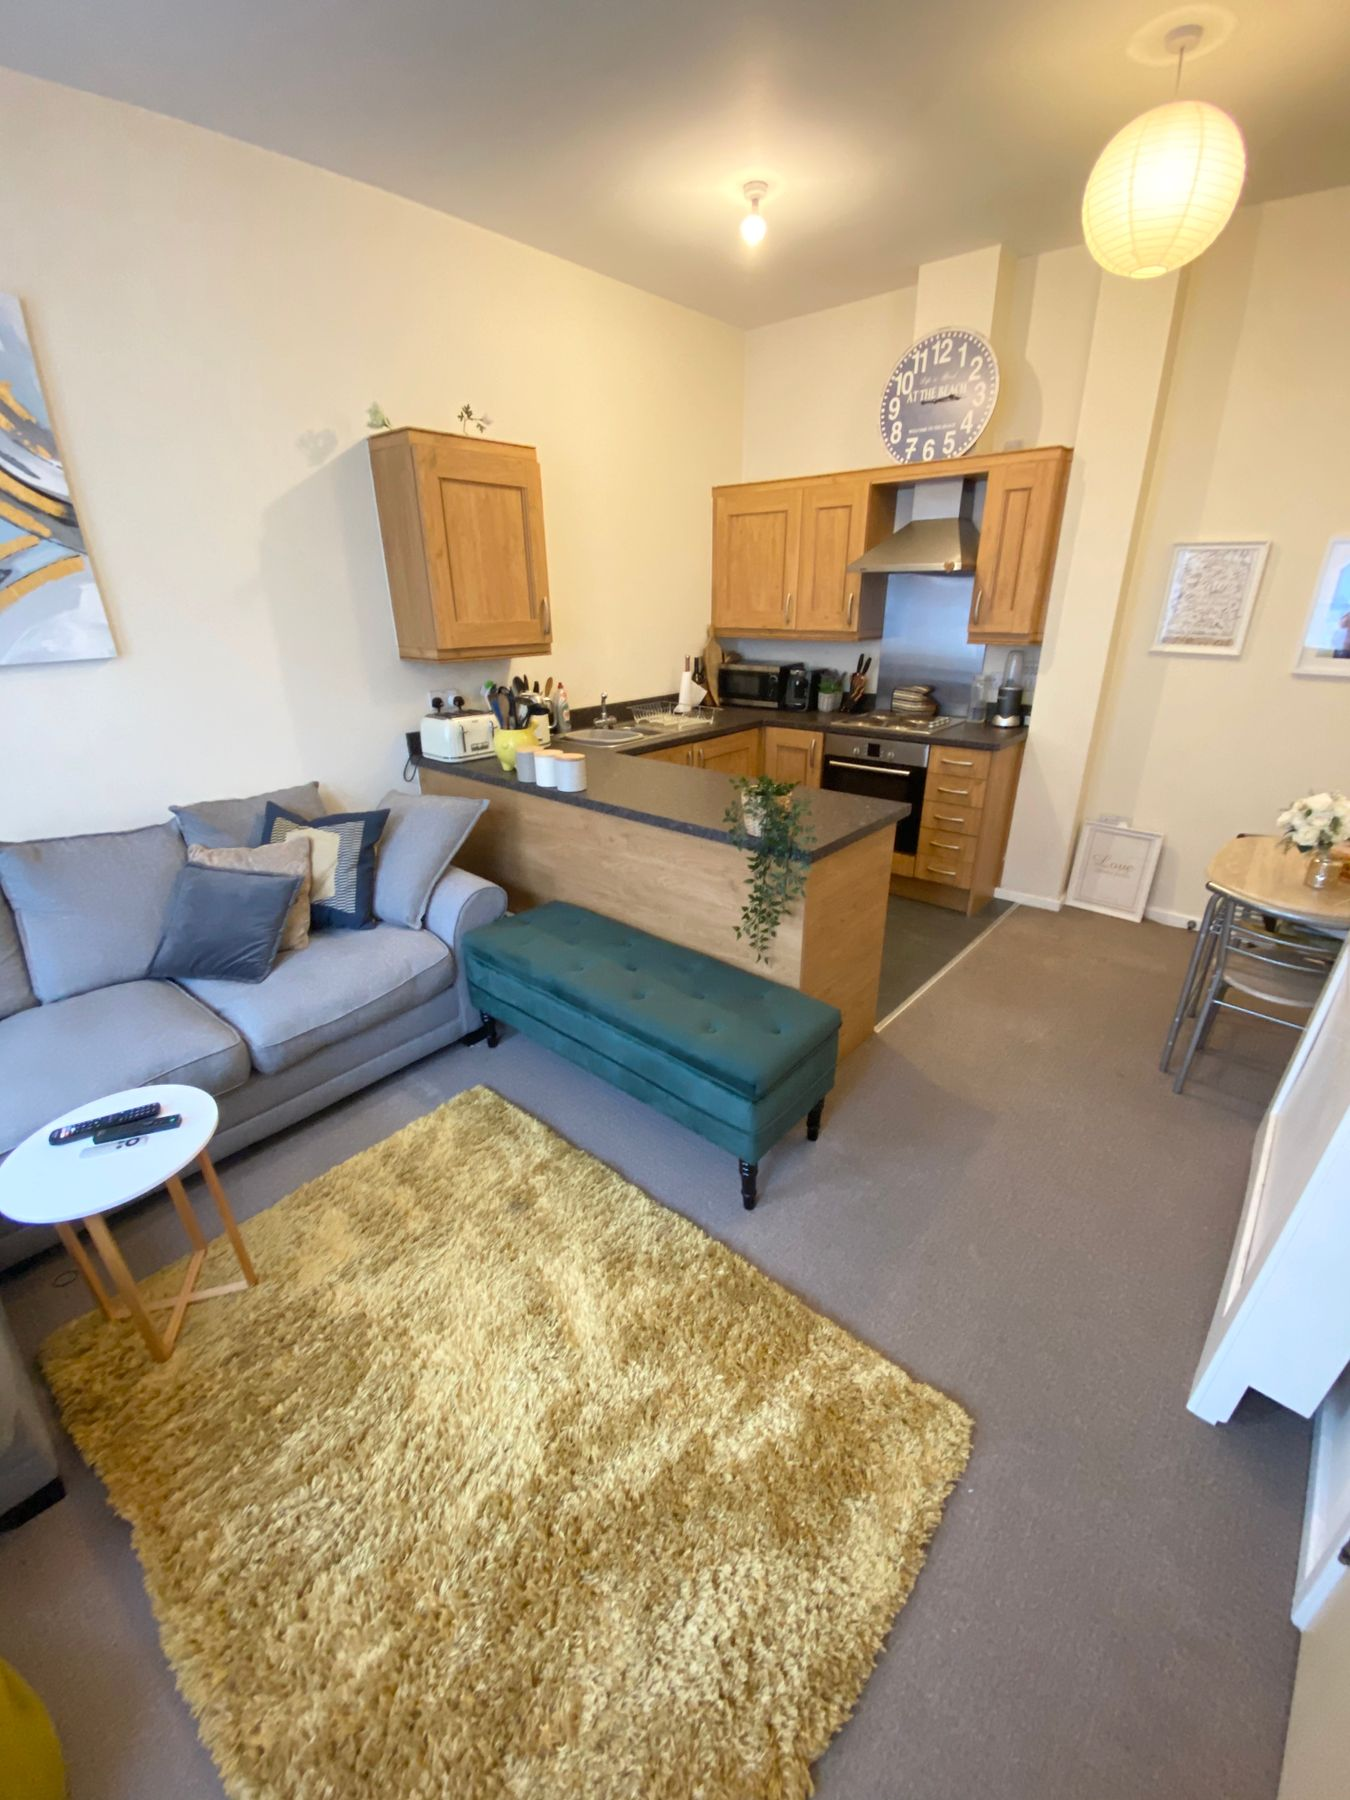 Property photo 1 of 8. Open Plan Living/Kitchen